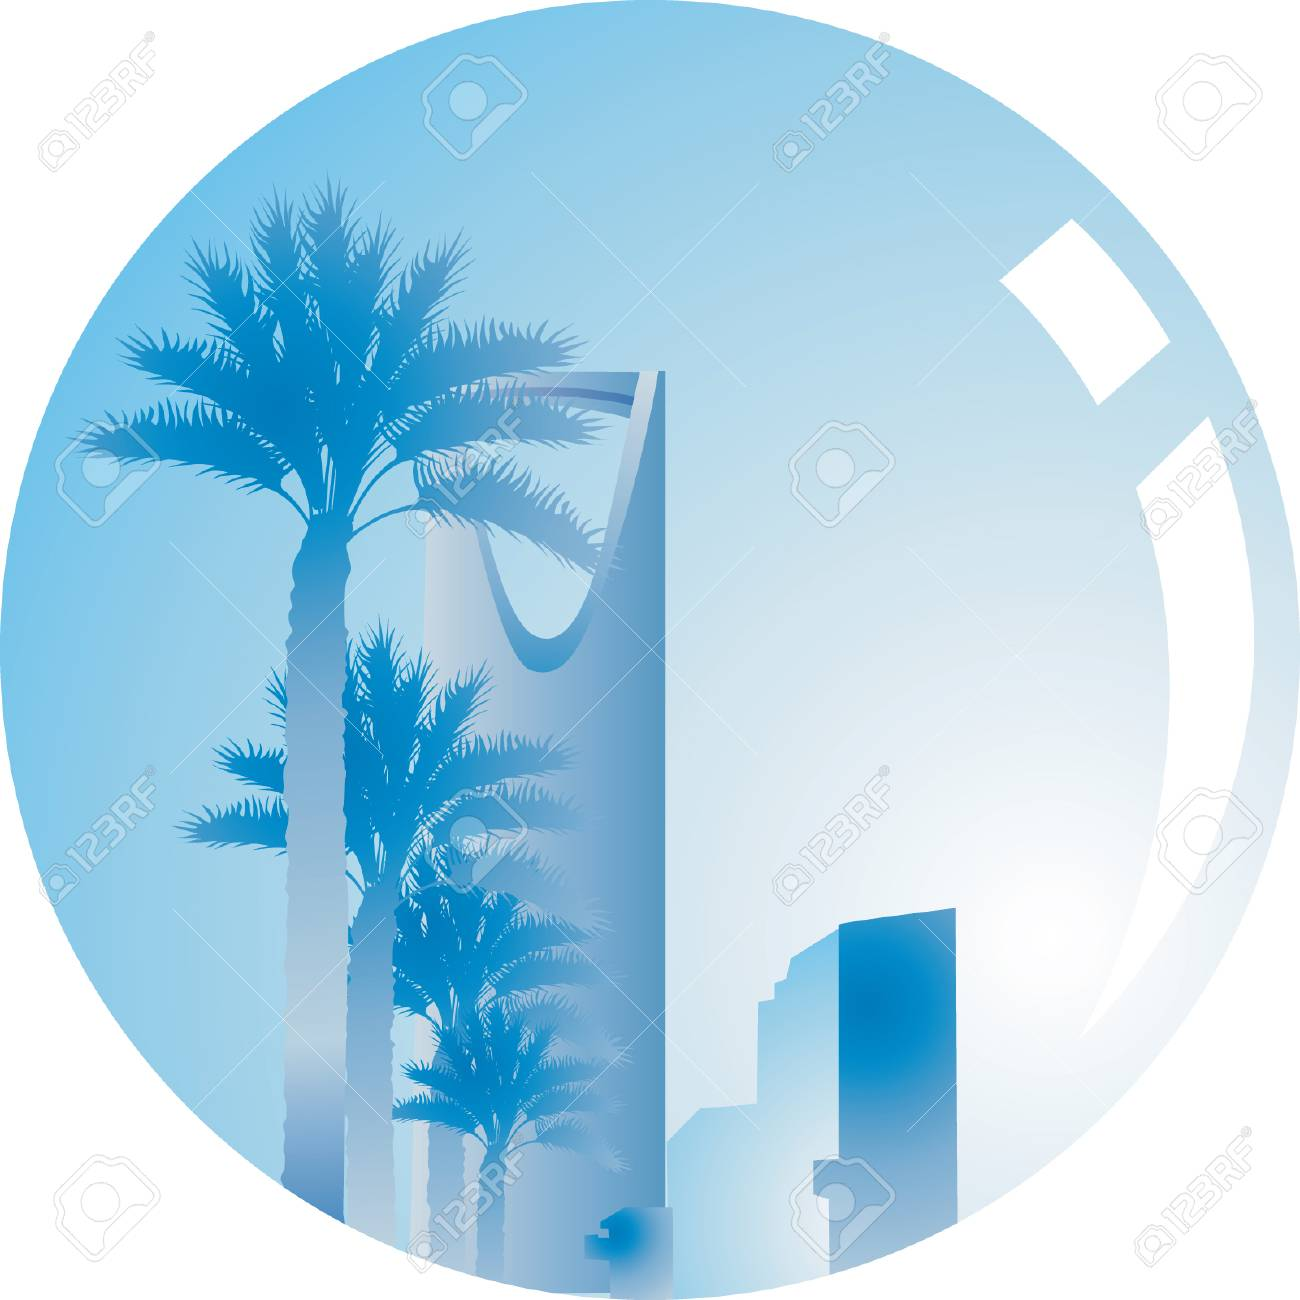 Image of building reflected on Lens Stock Vector - 1768579